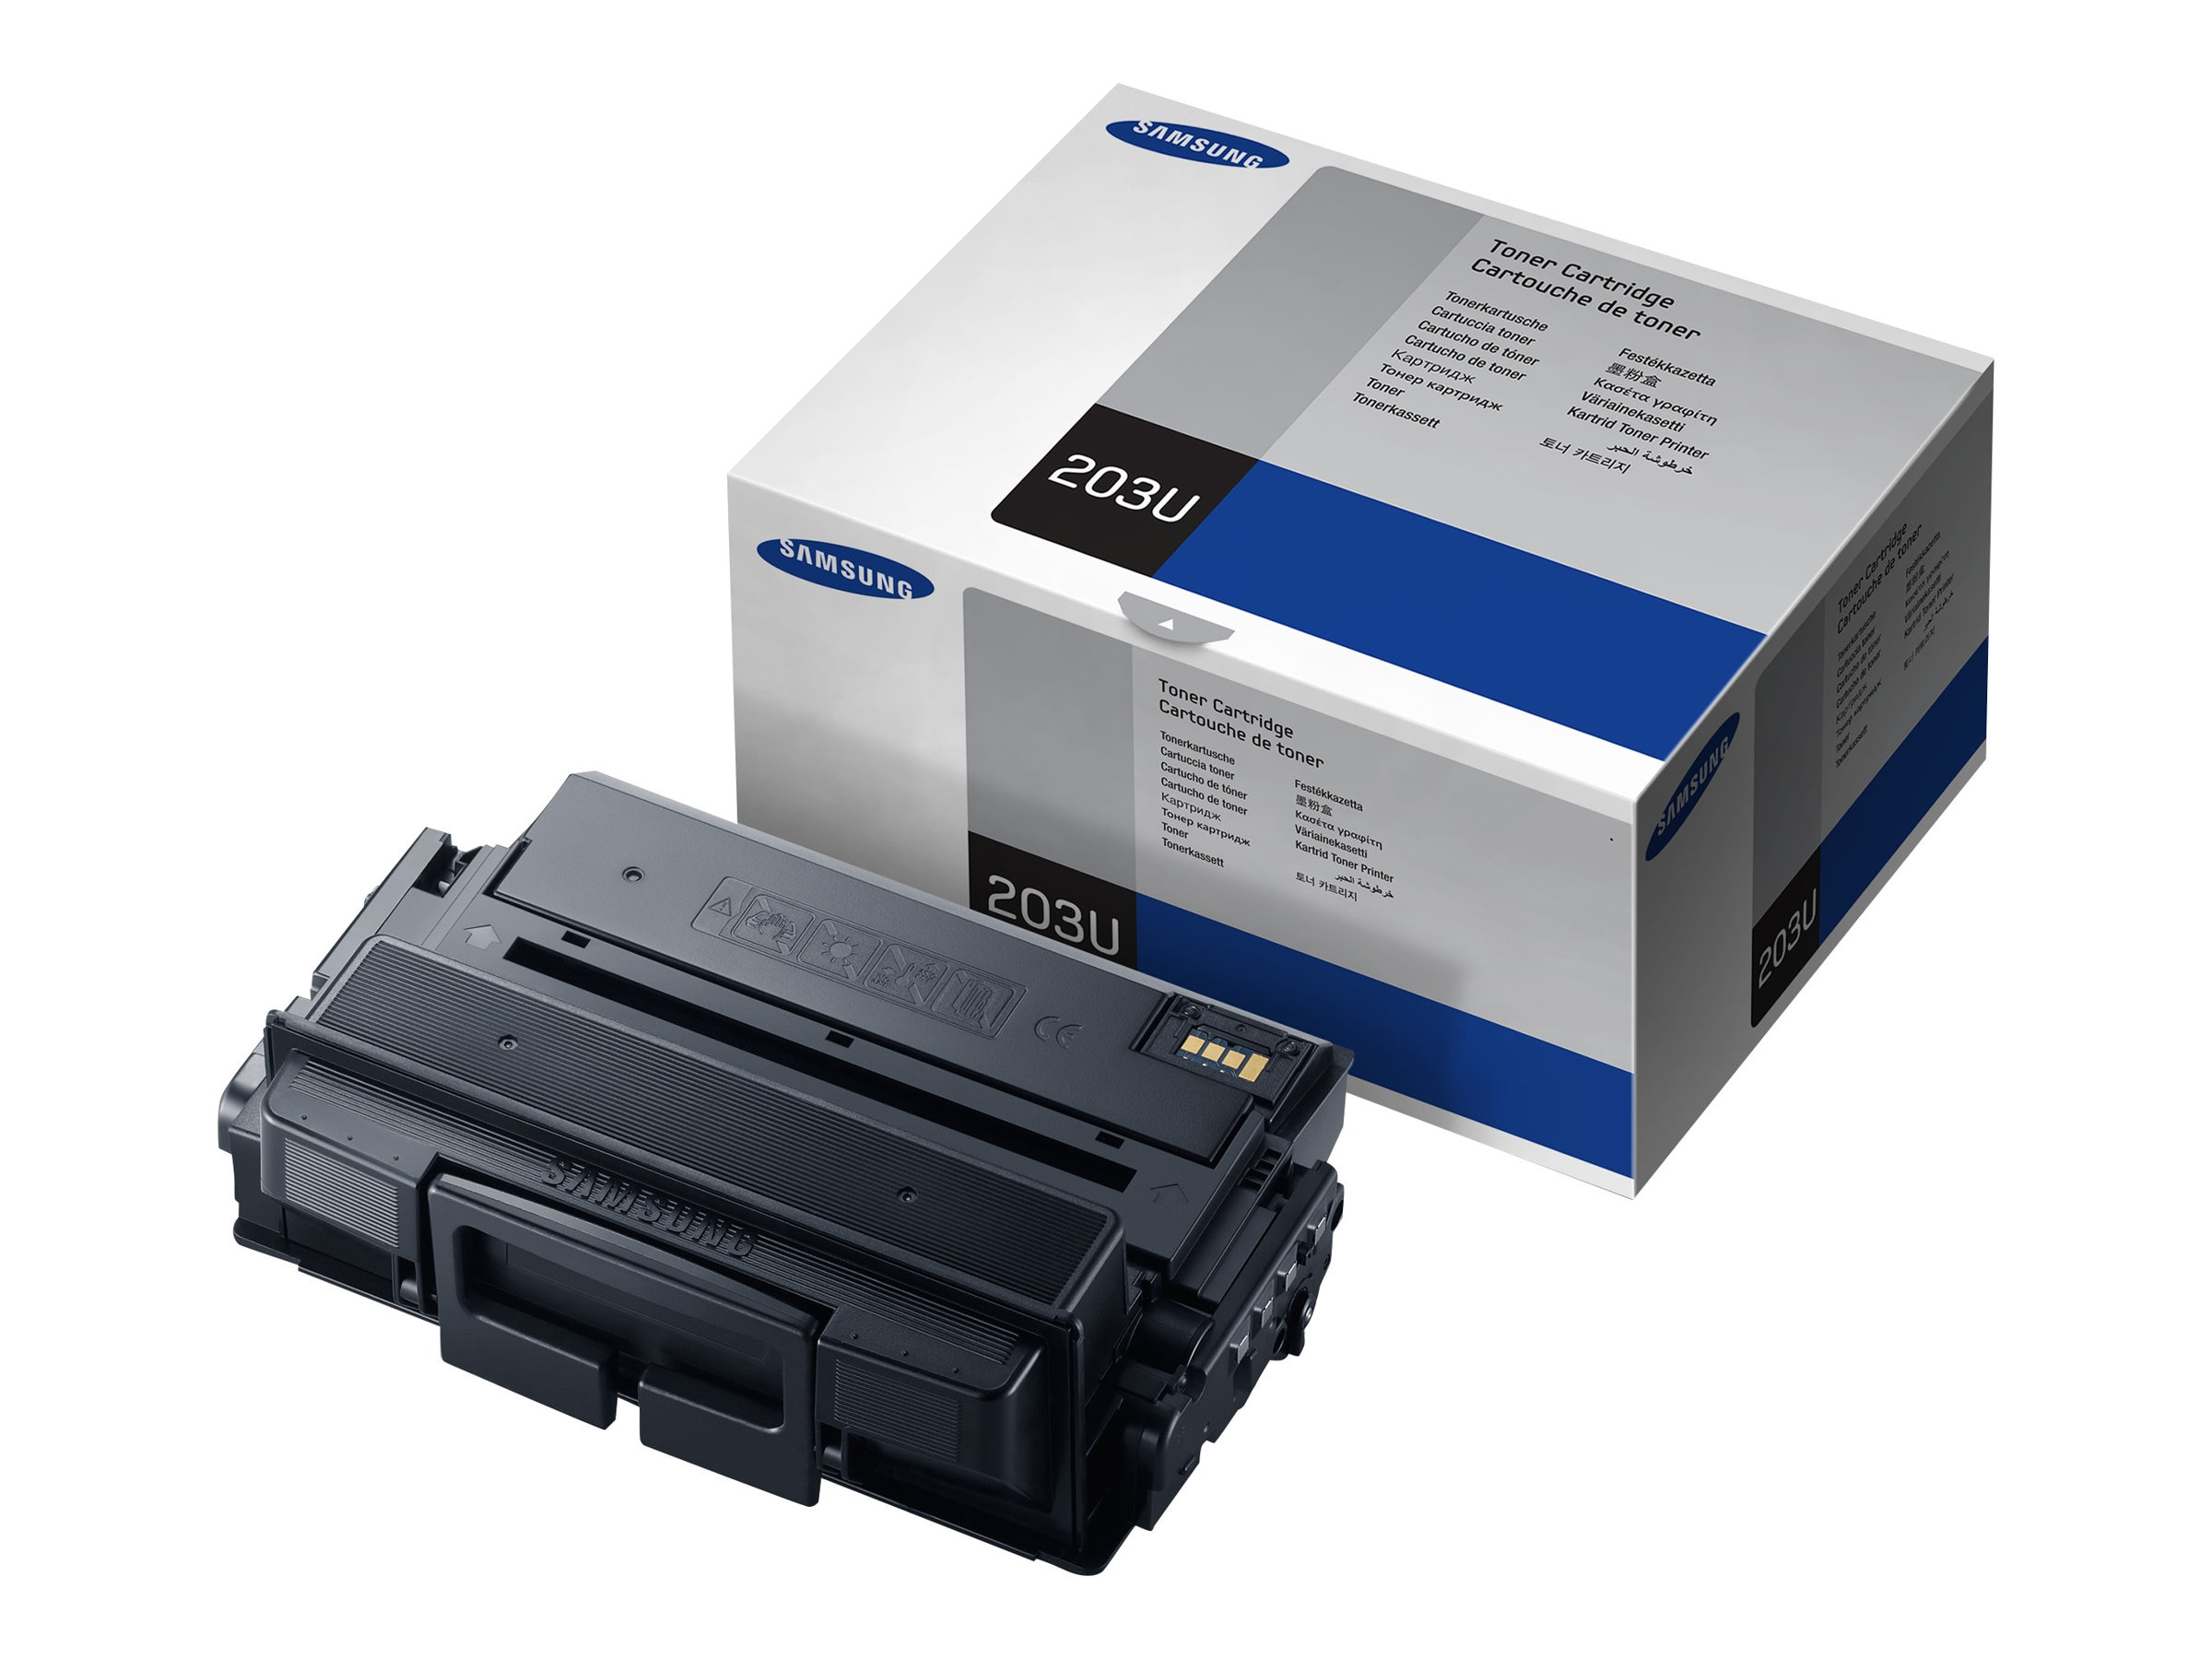 Samsung Black Ultra High Yield Toner Cartridge for Multifunction ProXpress M4070FR & ProXpress M4020ND